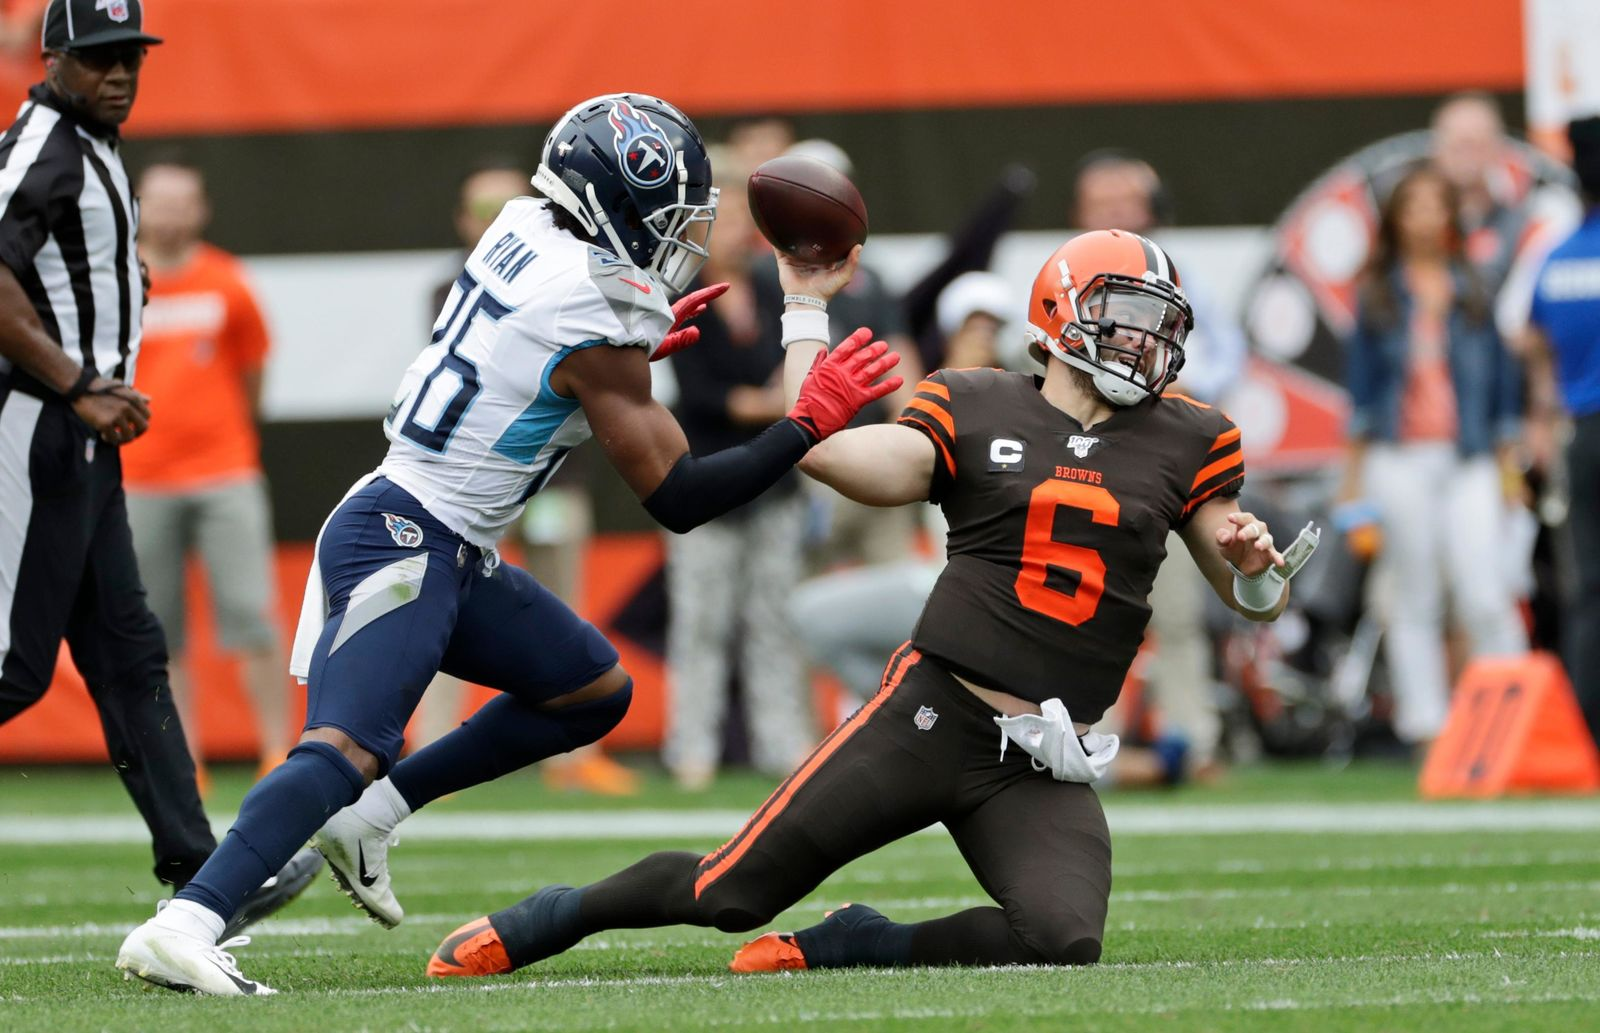 Cleveland Browns quarterback Baker Mayfield (6) throws under pressure from Tennessee Titans cornerback Logan Ryan (26) during the first half in an NFL football game, Sunday, Sept. 8, 2019, in Cleveland. (AP Photo/Ron Schwane)